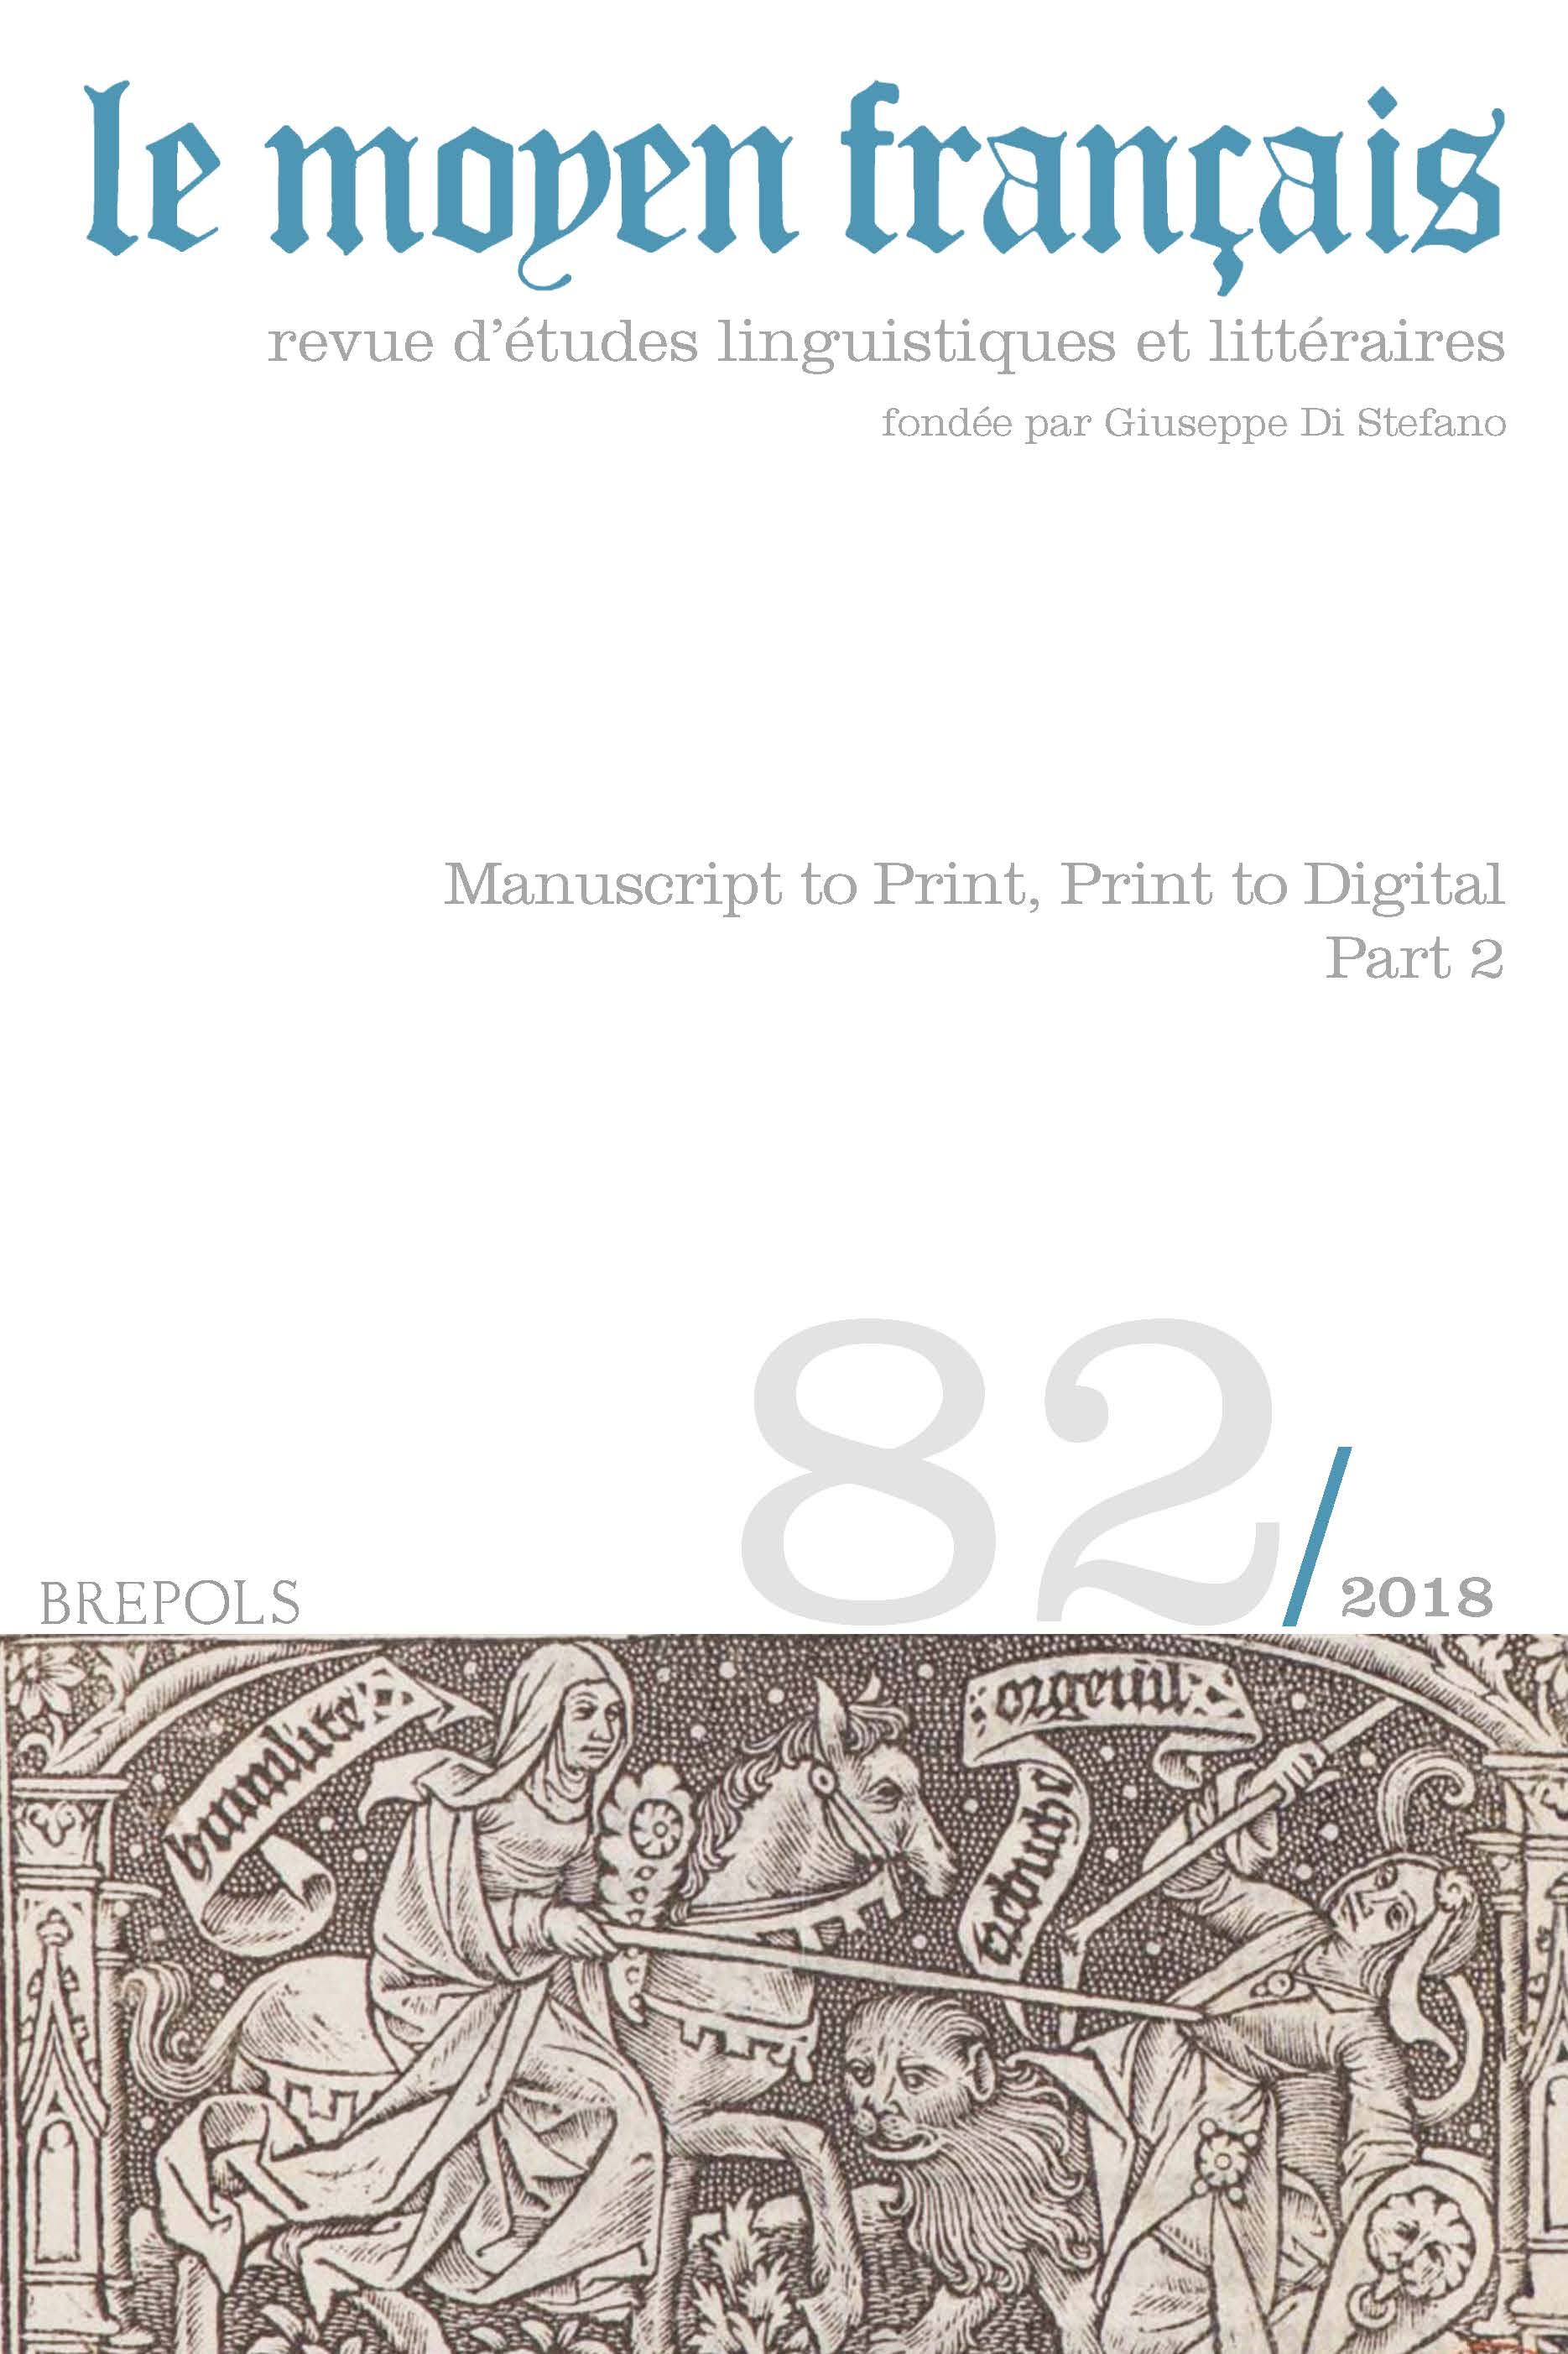 Le Moyen Français, 82 (2018), Manuscript to Print, Print to Digital: Editions in Performance and Performance in Editions in Late Medieval and Renaissance France (1400–1550) - Part 2 (éd. C. J. Brown)